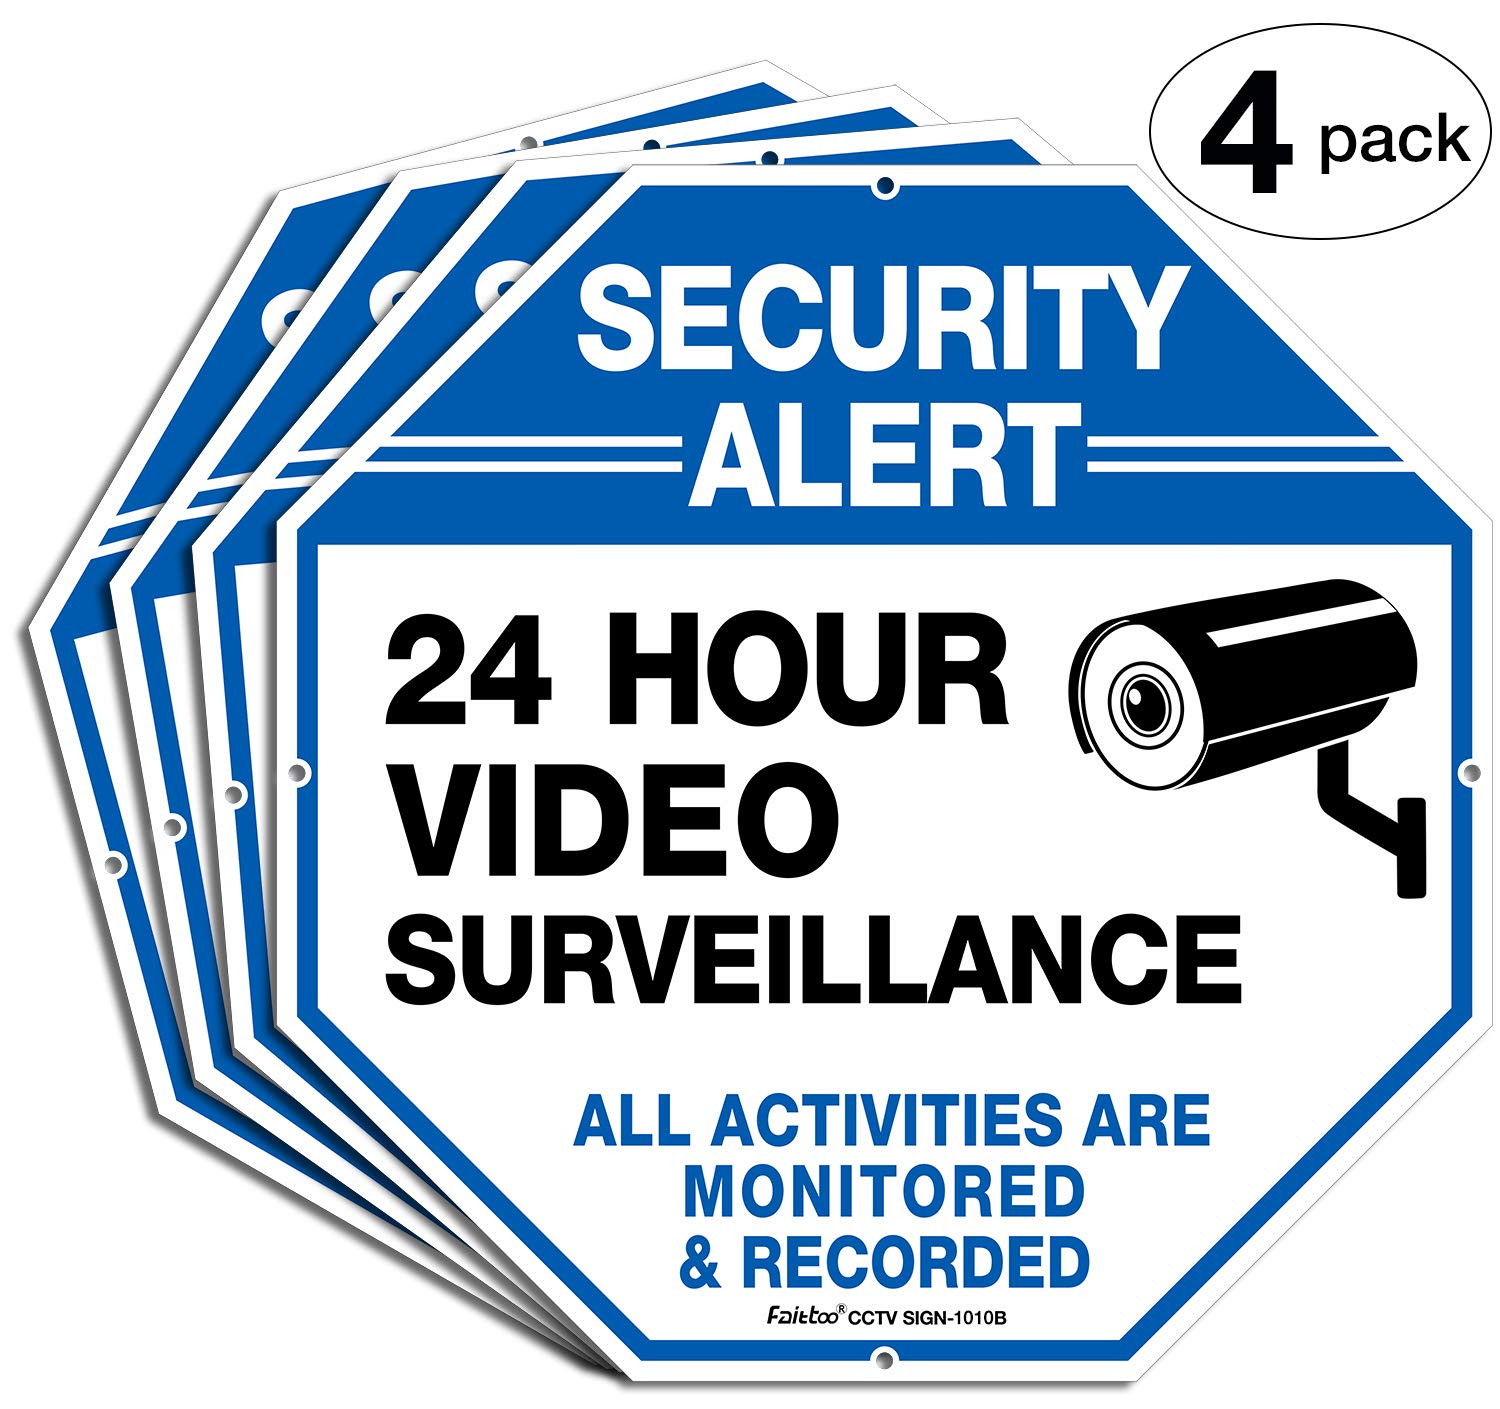 (4 Pack)''Security Alert - 24 Hour Video Surveillance, All Activities Monitored'' Signs,10 x 10 .040 Aluminum Reflective Warning Sign for Home Business CCTV Security Camera, Indoor or Outdoor Use,Blue by Faittoo